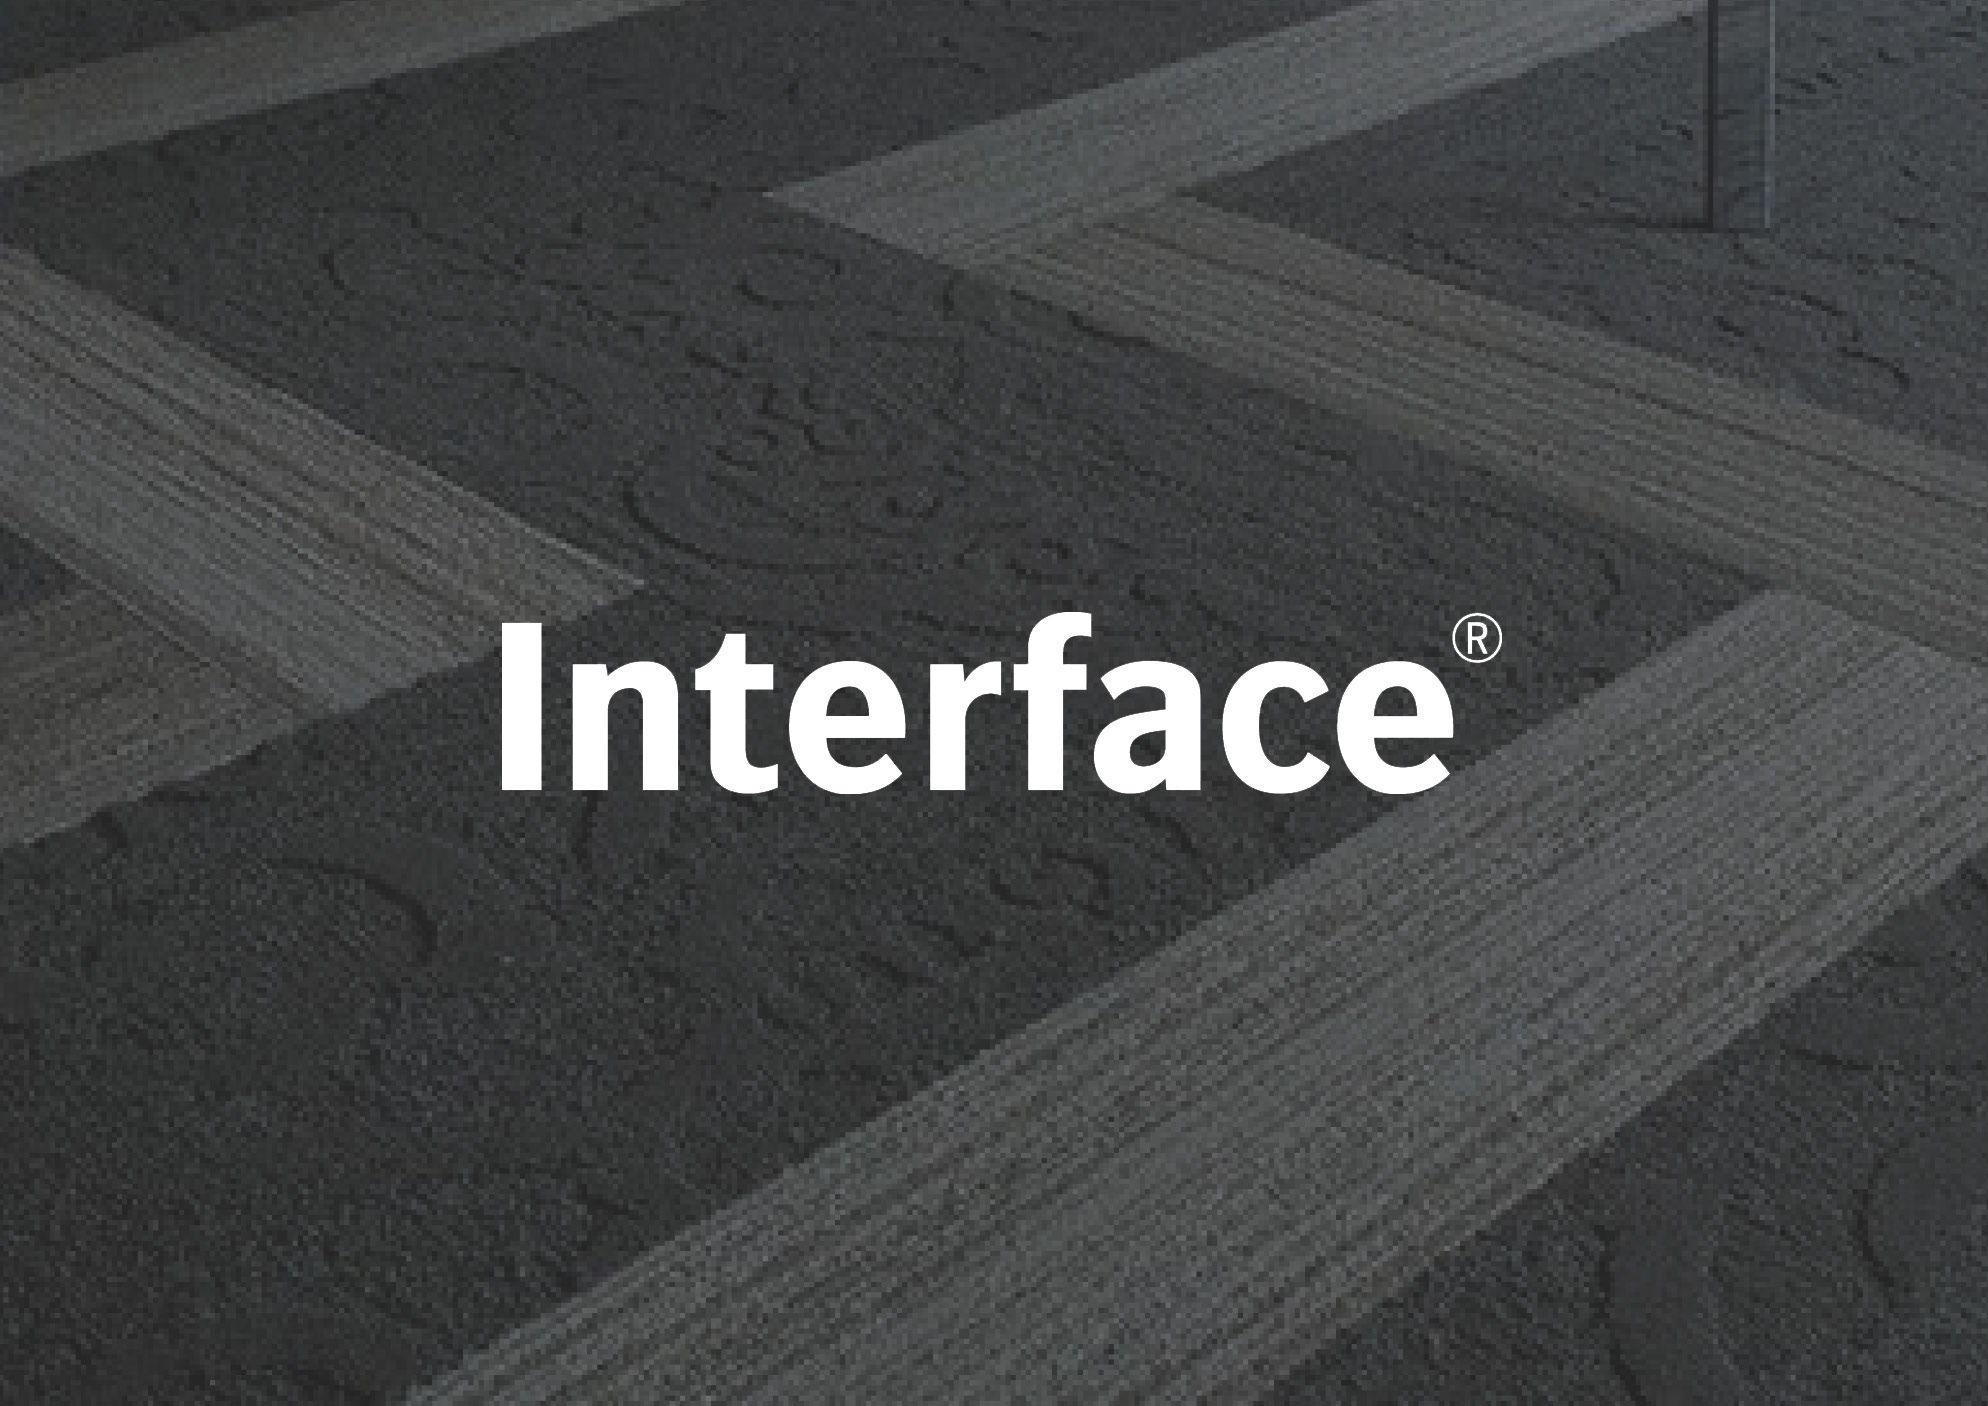 - Interface® is the worldwide leader in design, production and sales of environmentally-responsible modular carpet & luxury vinyl tiles for the commercial, institutional, hospitality and residential markets.